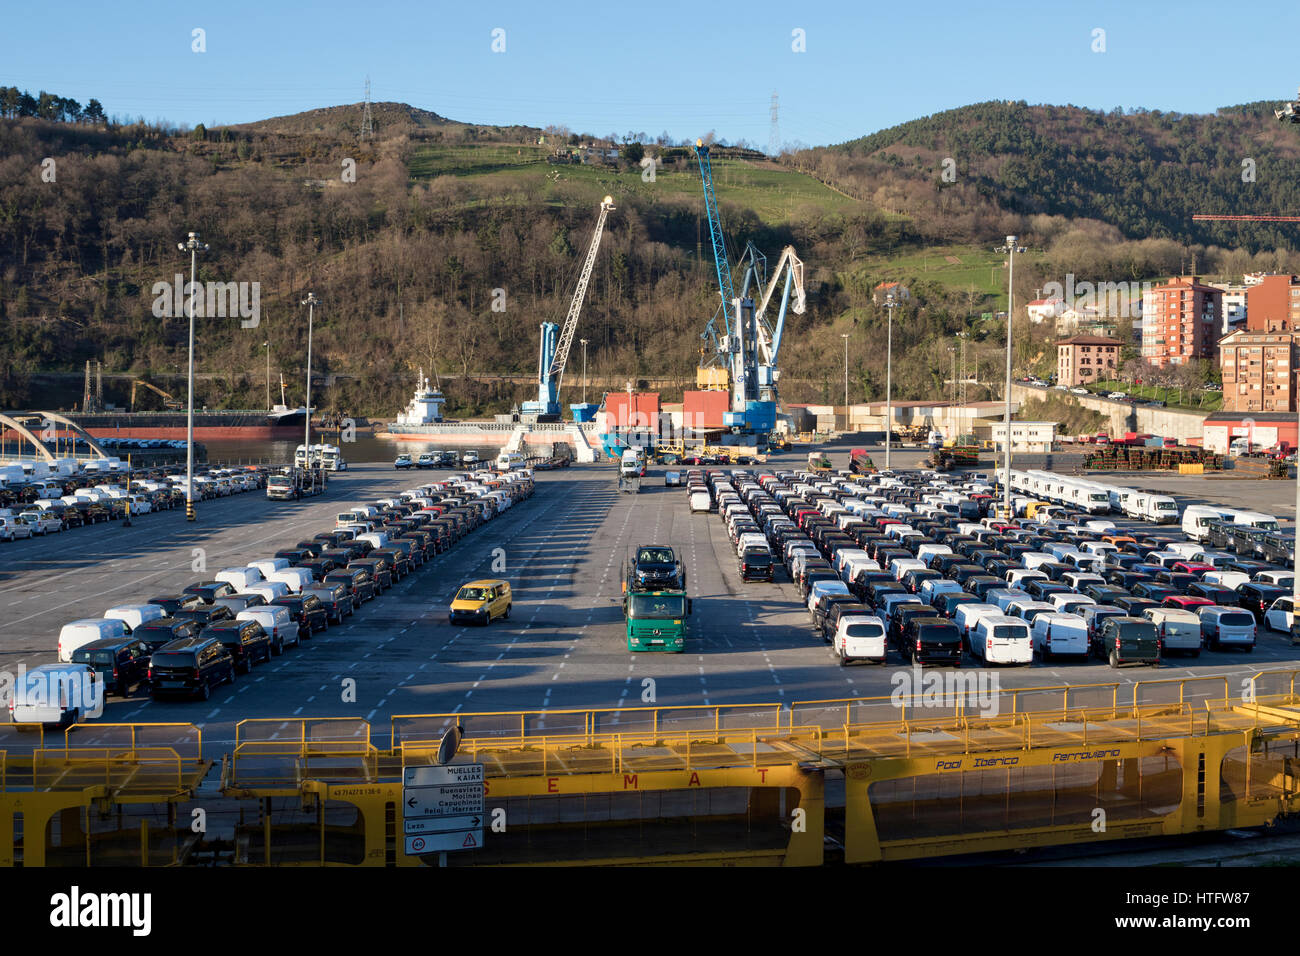 Pasajes seaport with some activity, parking new vans and preparing some cargos in Guipuzcoa (Basque country, Spain) - Stock Image